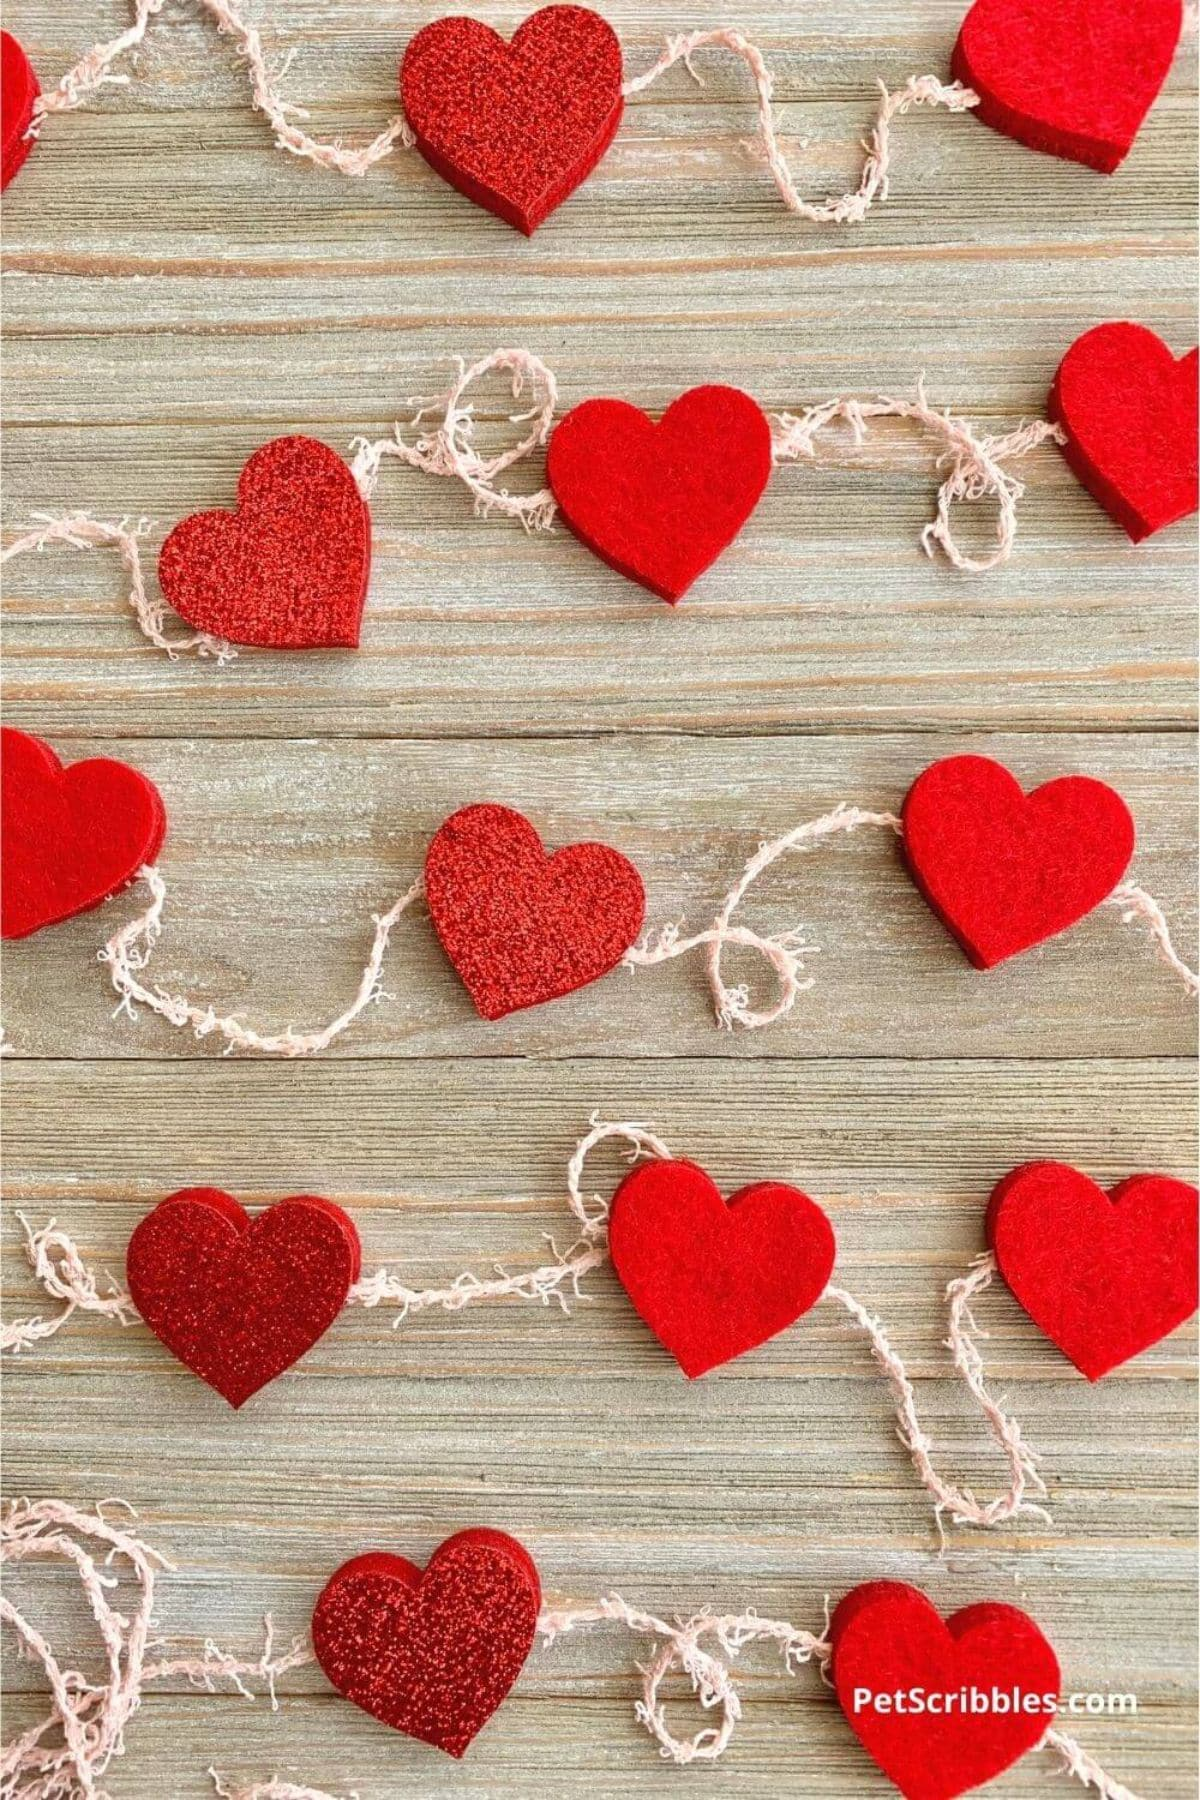 On a wooden background are 3 strongs of red felt hearts